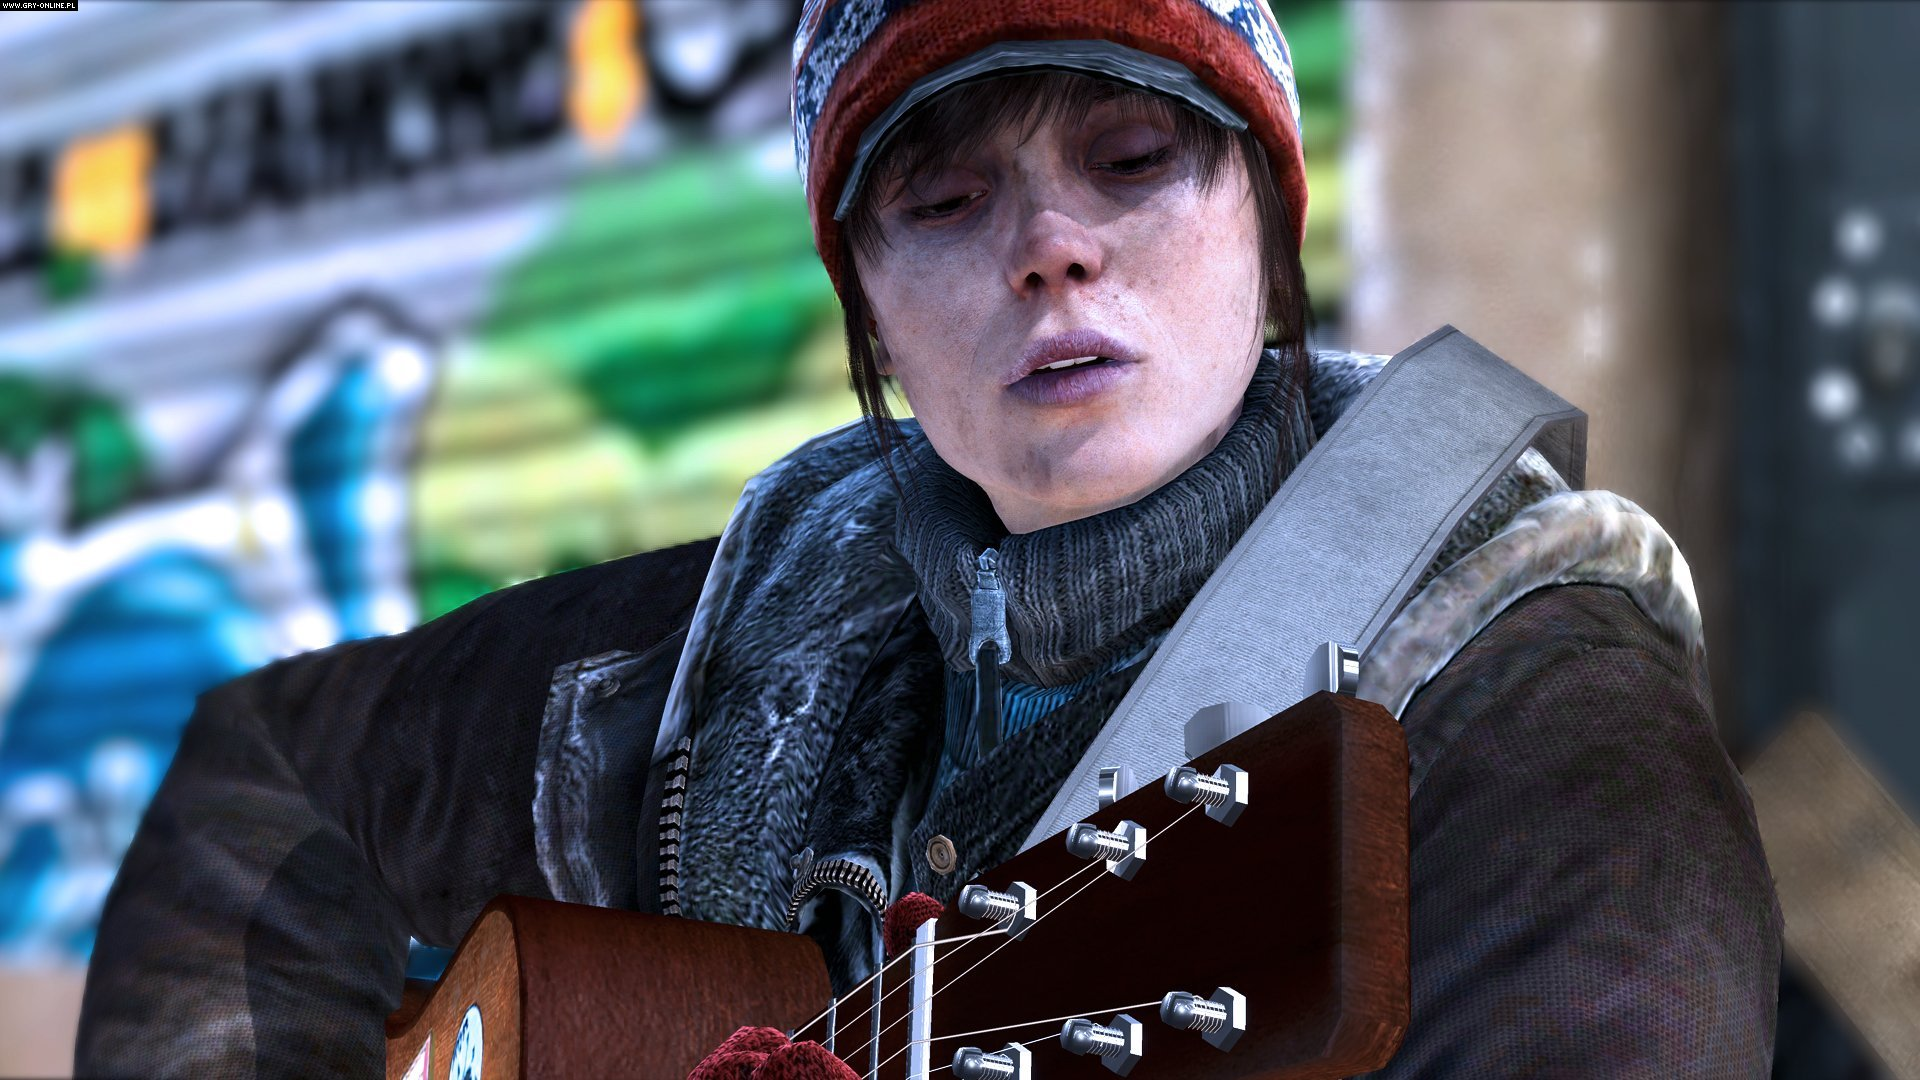 Beyond: Dwie Dusze PS3 Gry Screen 36/61, Quantic Dream, Sony Interactive Entertainment